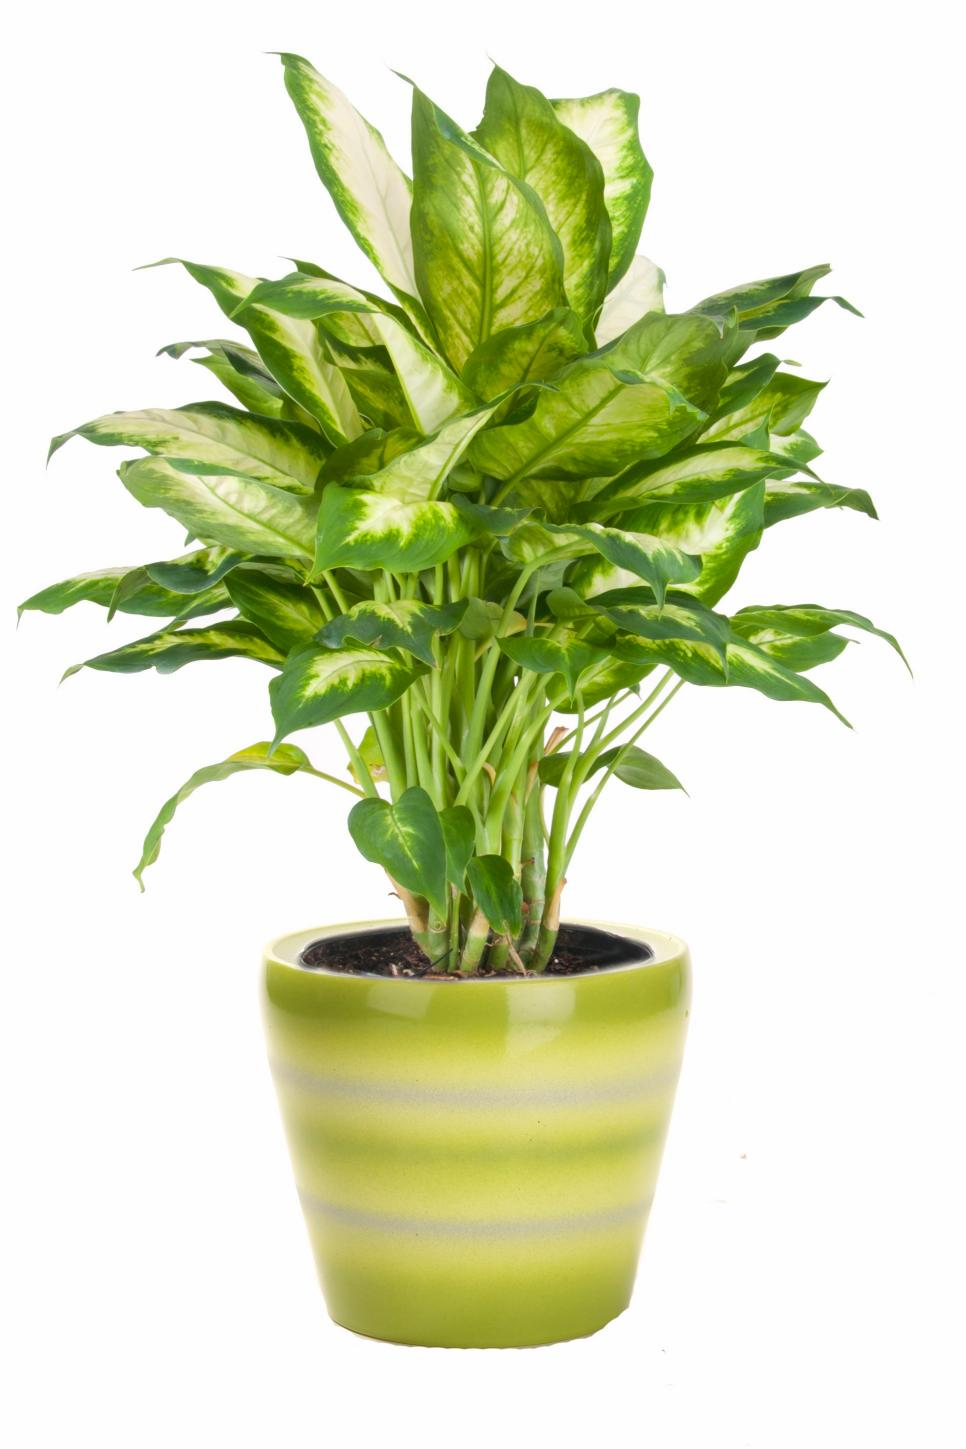 Shop house plants in the plants, bulbs & seeds section of fonodeqajebajof.gq Selection · 10% Military Discount · Easy Shipping & Delivery · One-Stop-Shop for Outdoor,+ followers on Twitter.